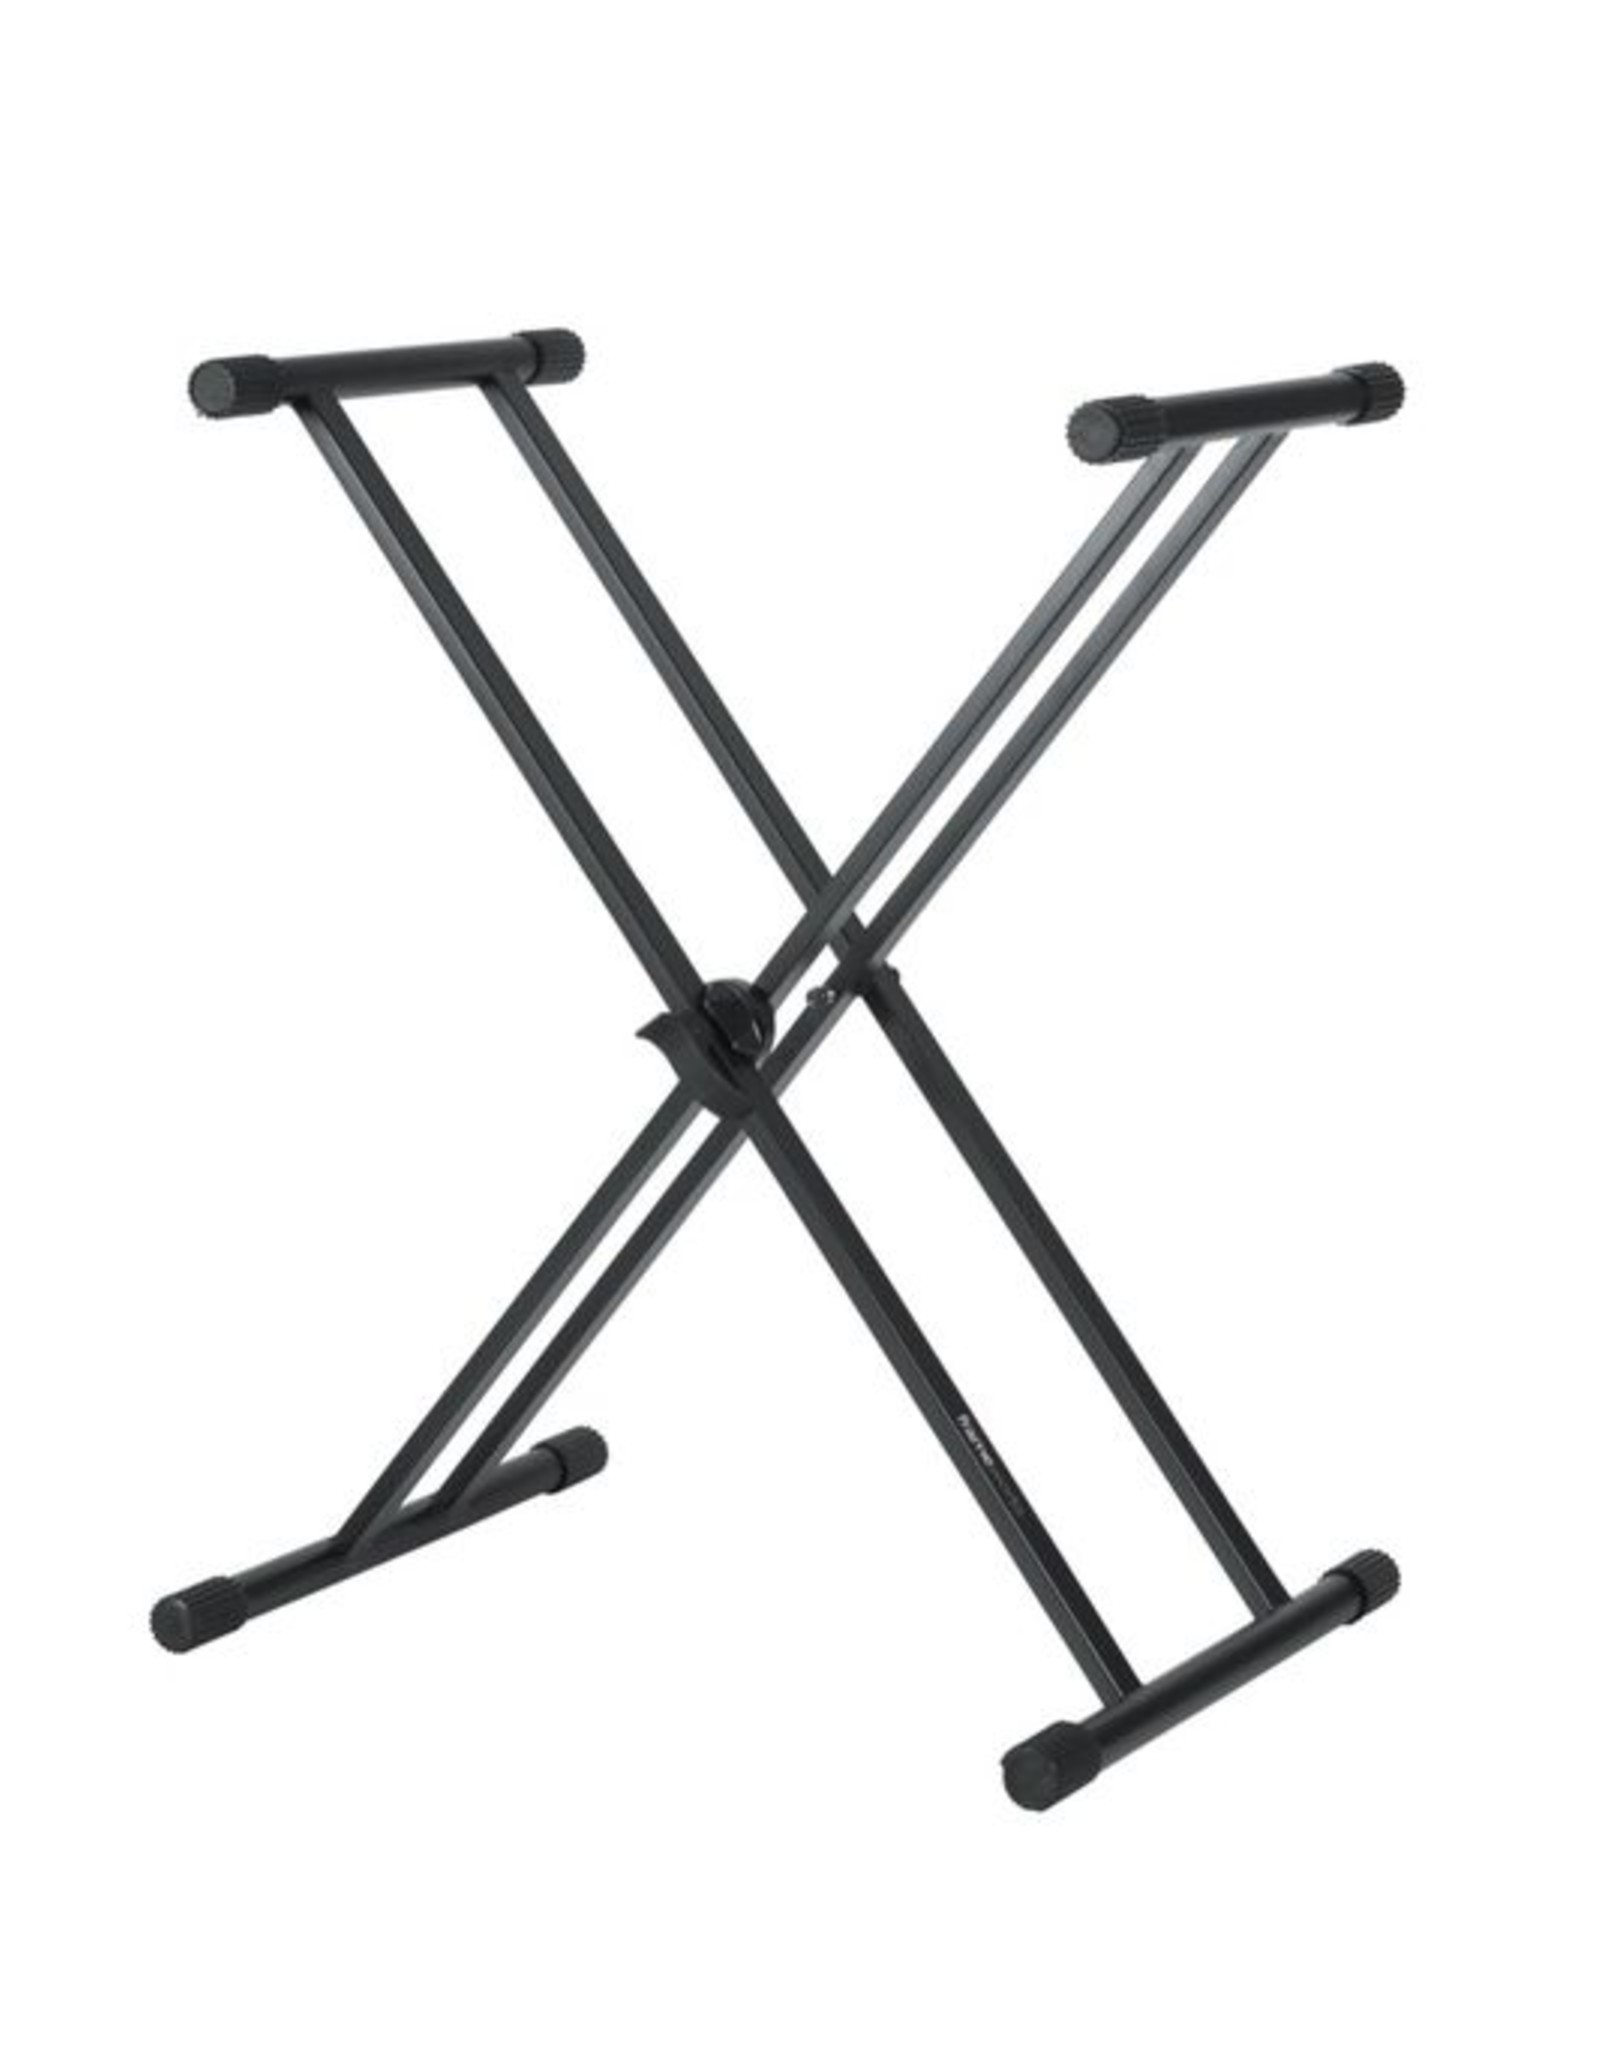 Gator Gator Frame Works Deluxe Adjustable 'X' Style Keyboard Stand with Rubberized Leveling Feet